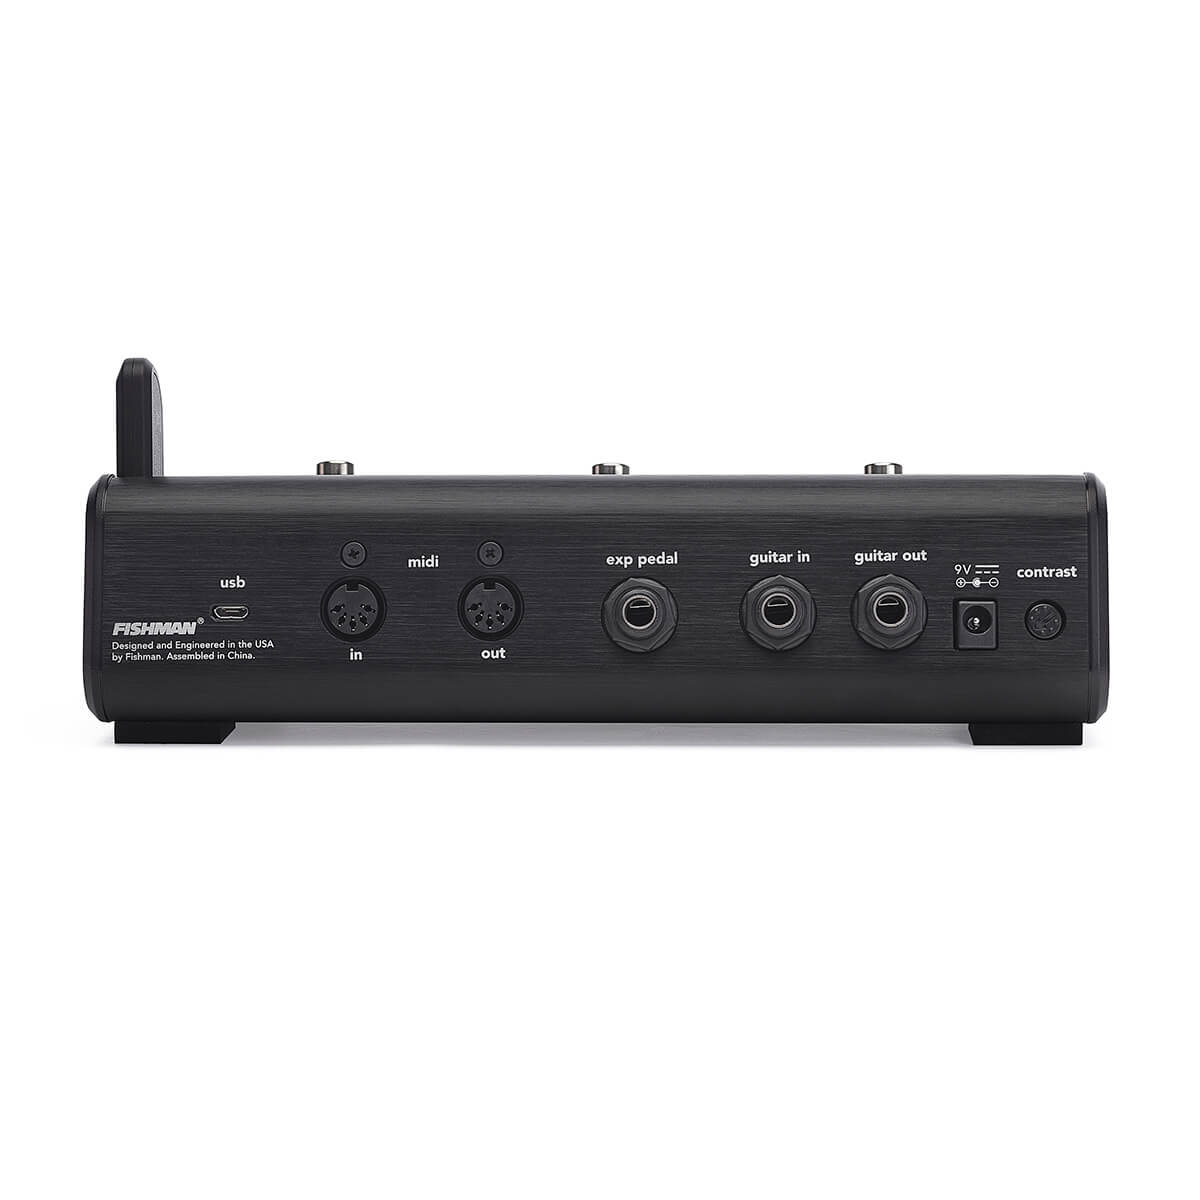 rear view of Fishman TriplePlay FC-1 Controller with inputs